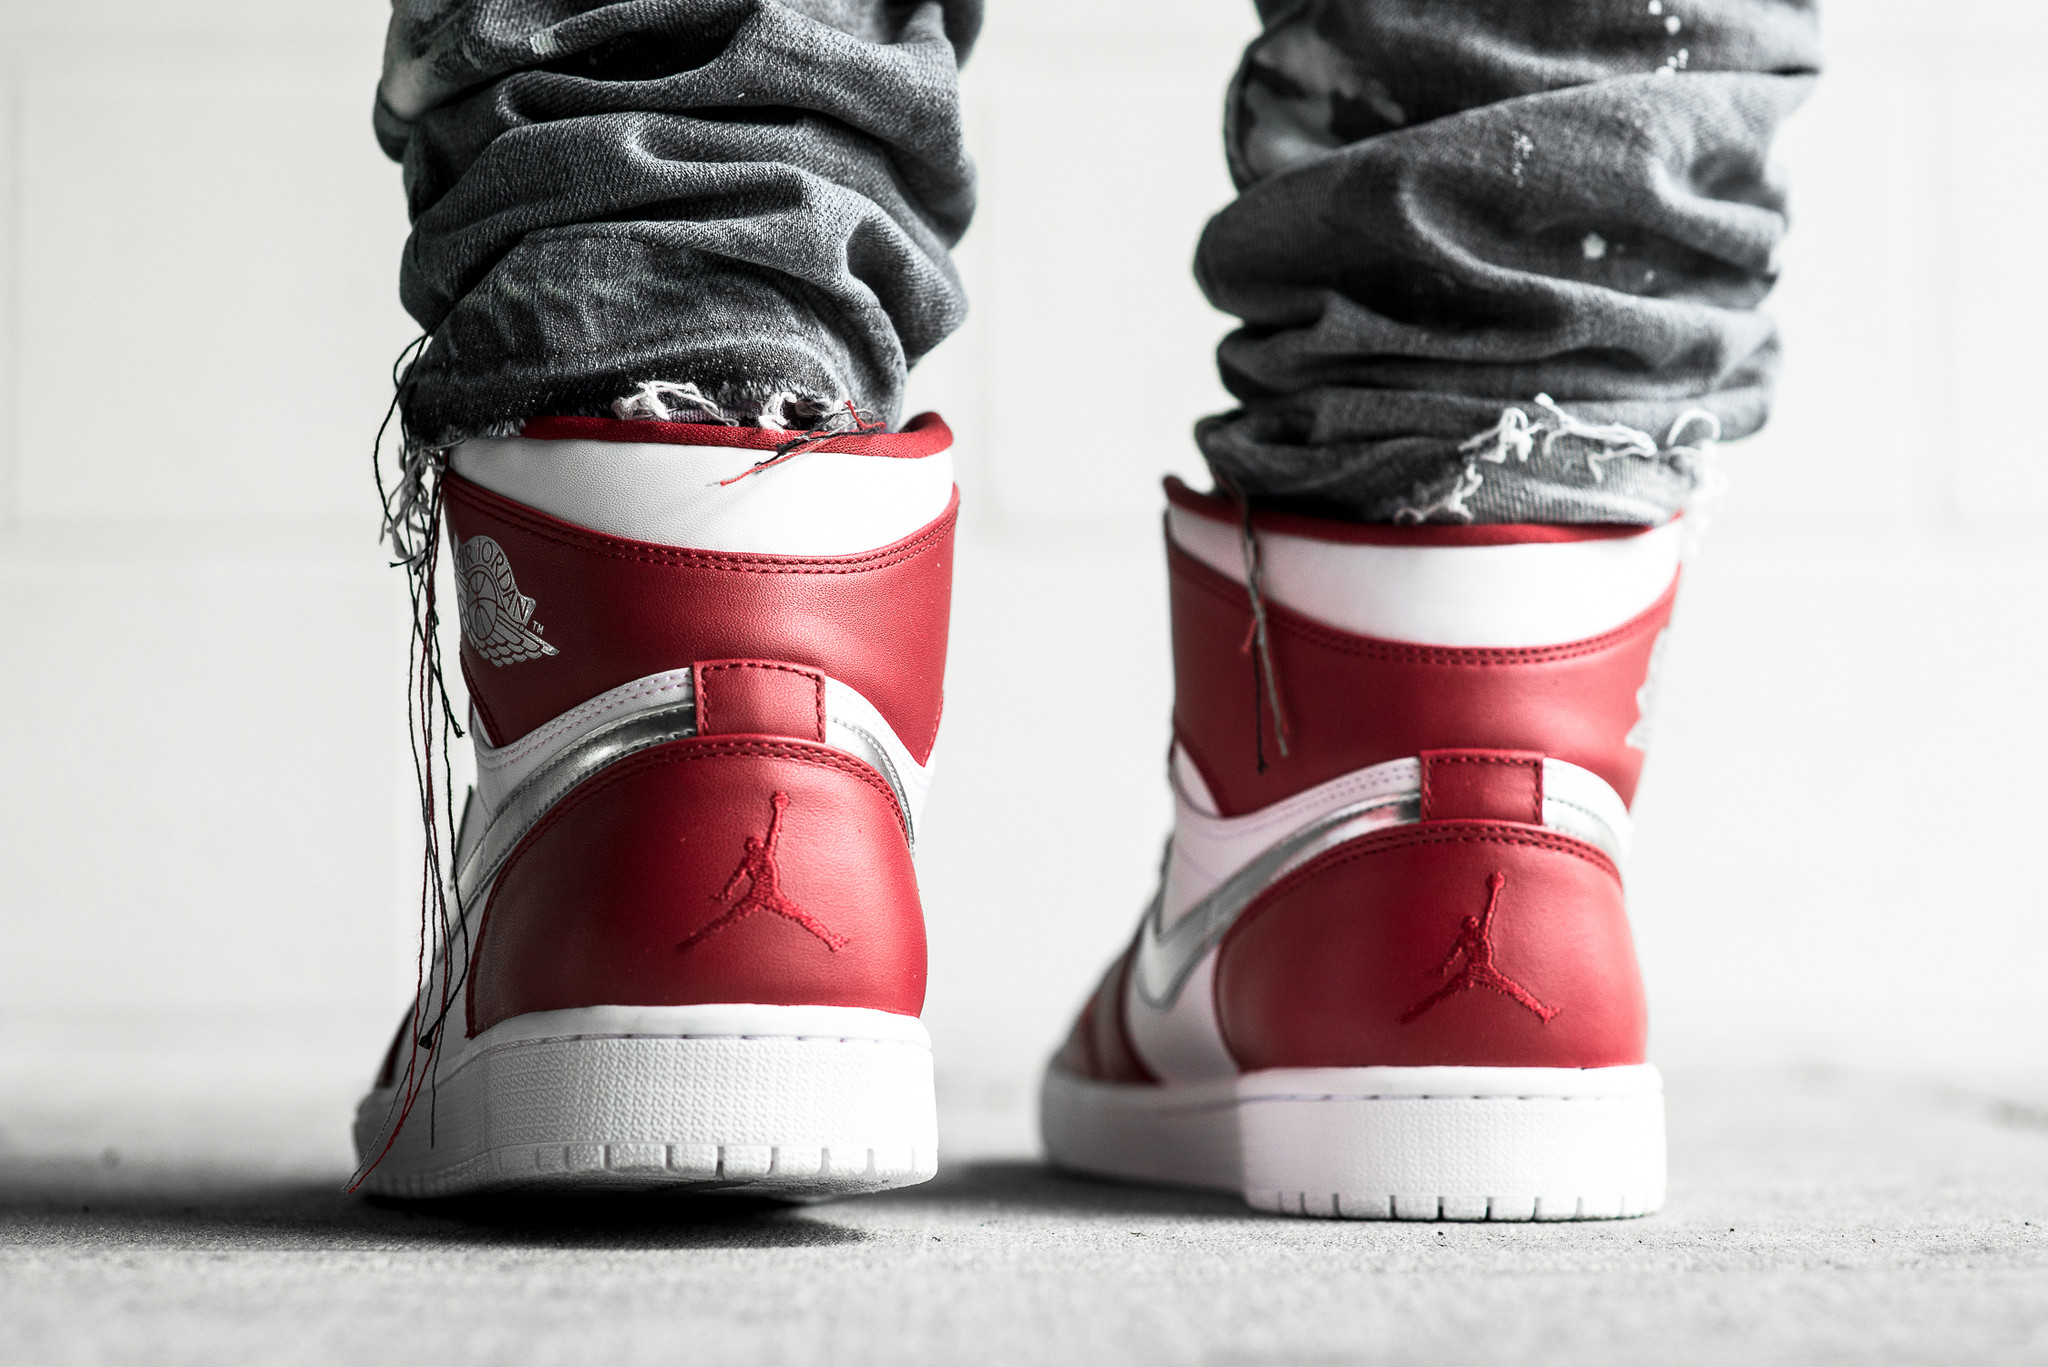 a198293bb21feb italy the air jordan 1 retro high silver medal releases this weekend 5  51612 5f0d8